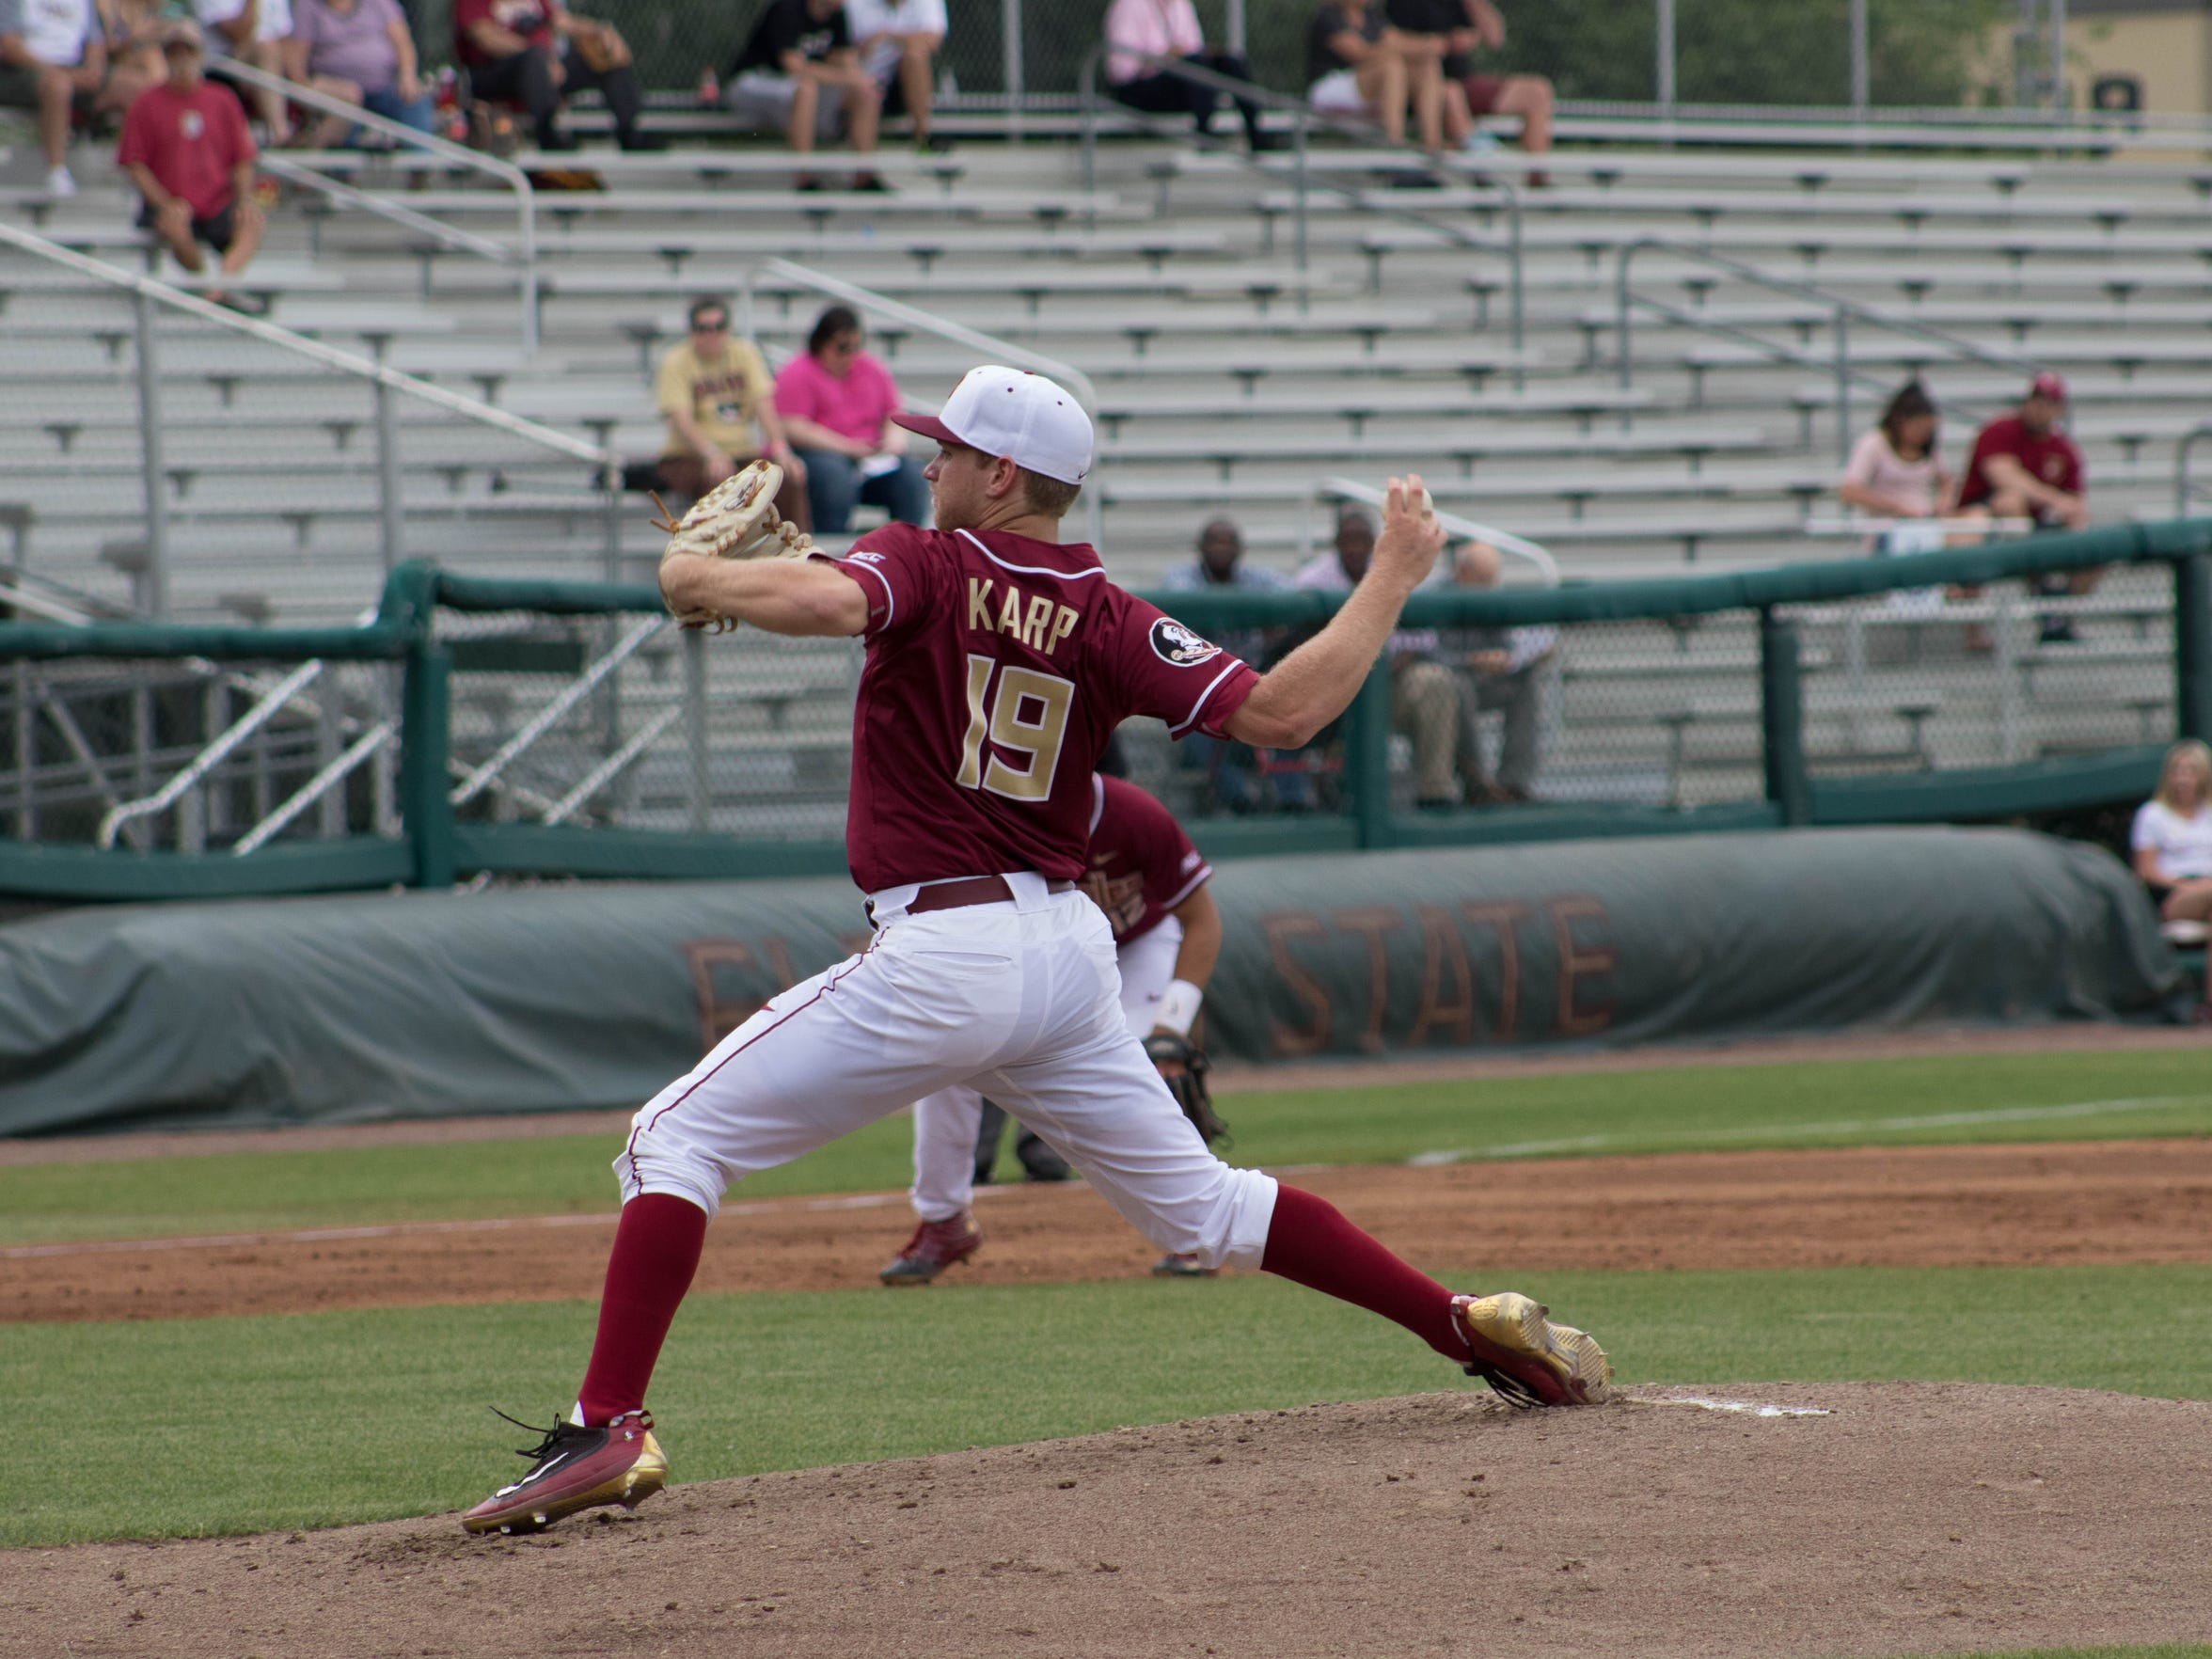 Karp threw 66 pitches in his first career start against Stetson.